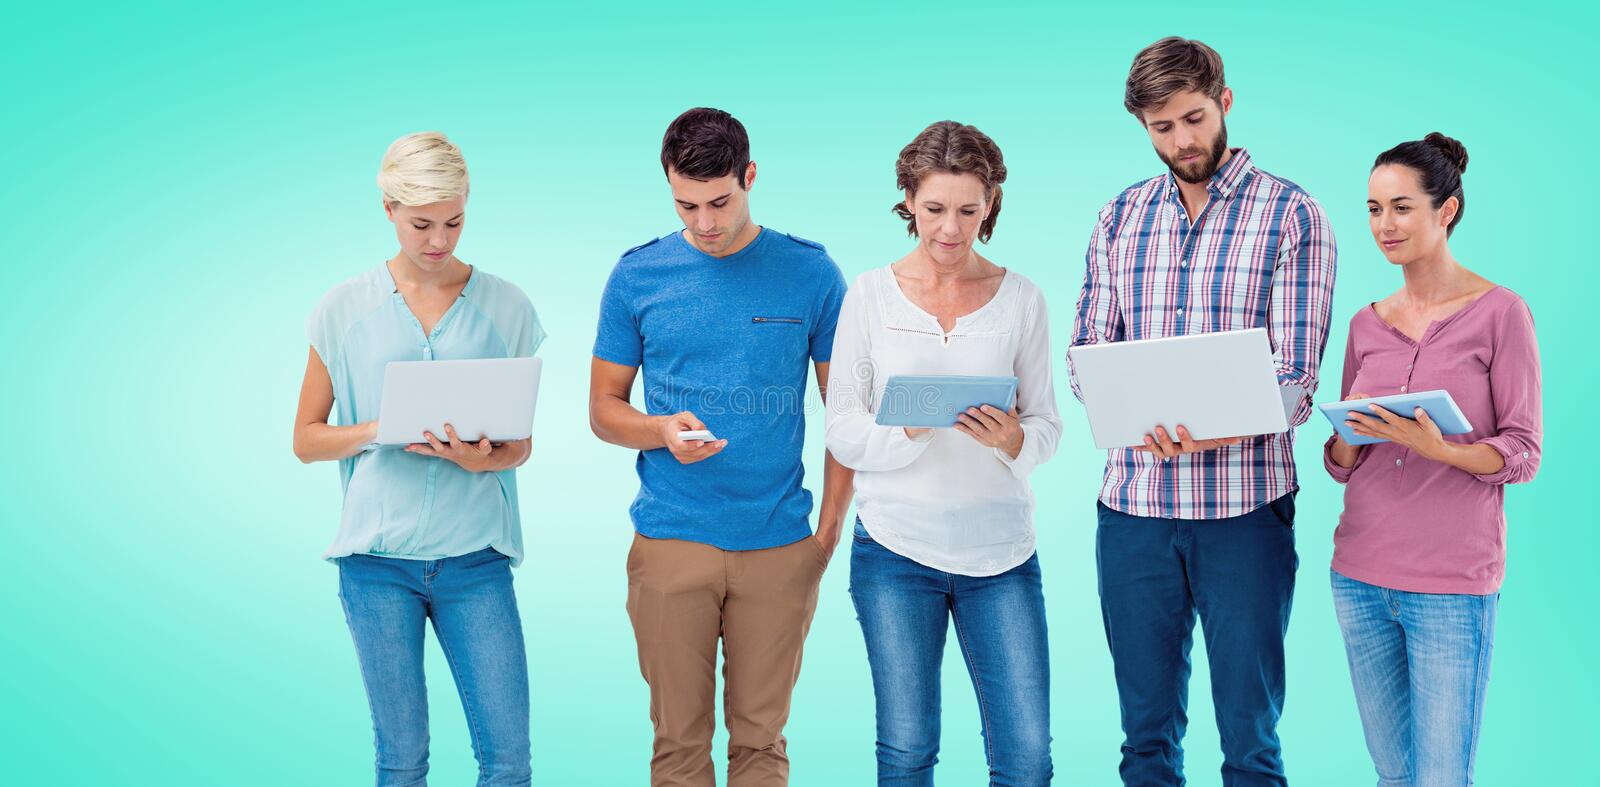 Composite image of group of young colleagues using laptop and tablet. Group of young colleagues using laptop and tablet against blue vignette background stock photos